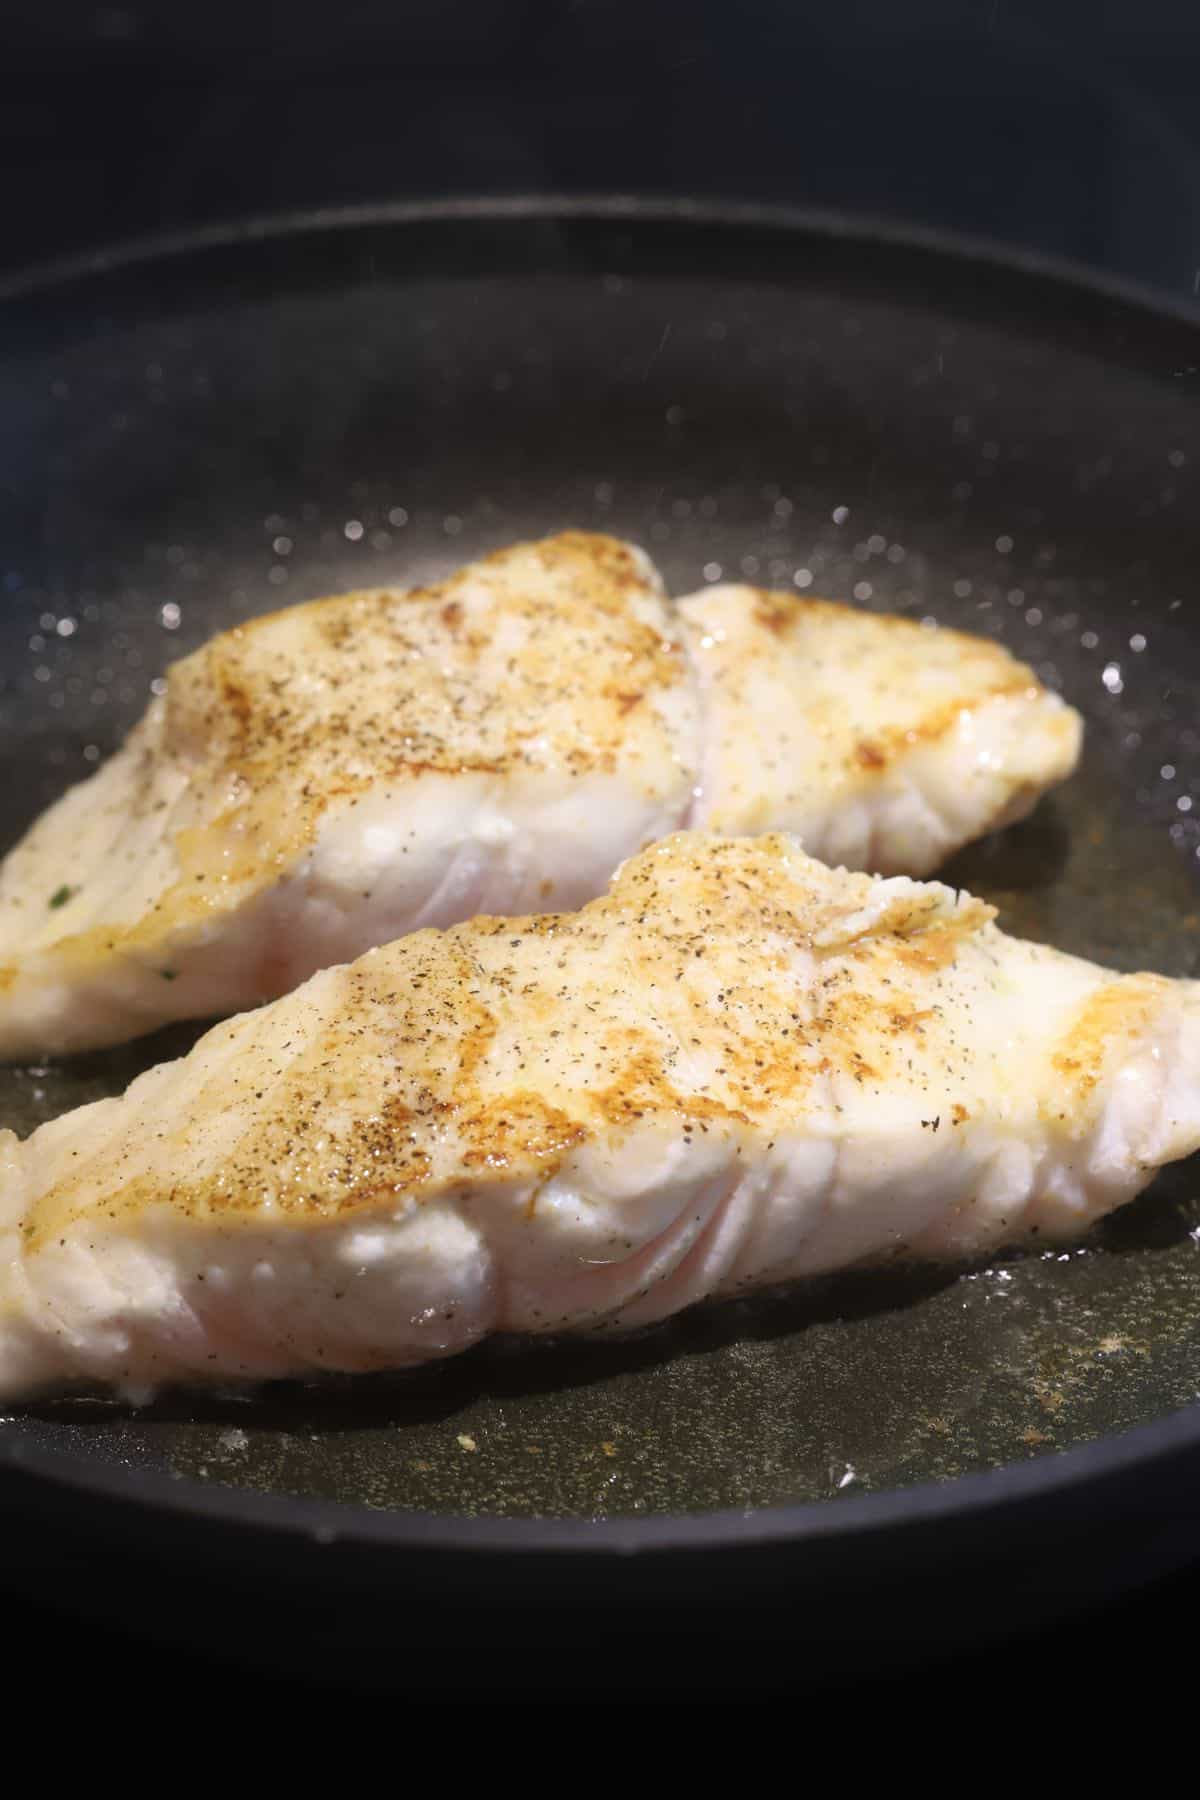 Two grouper fillets cooking in a skillet.